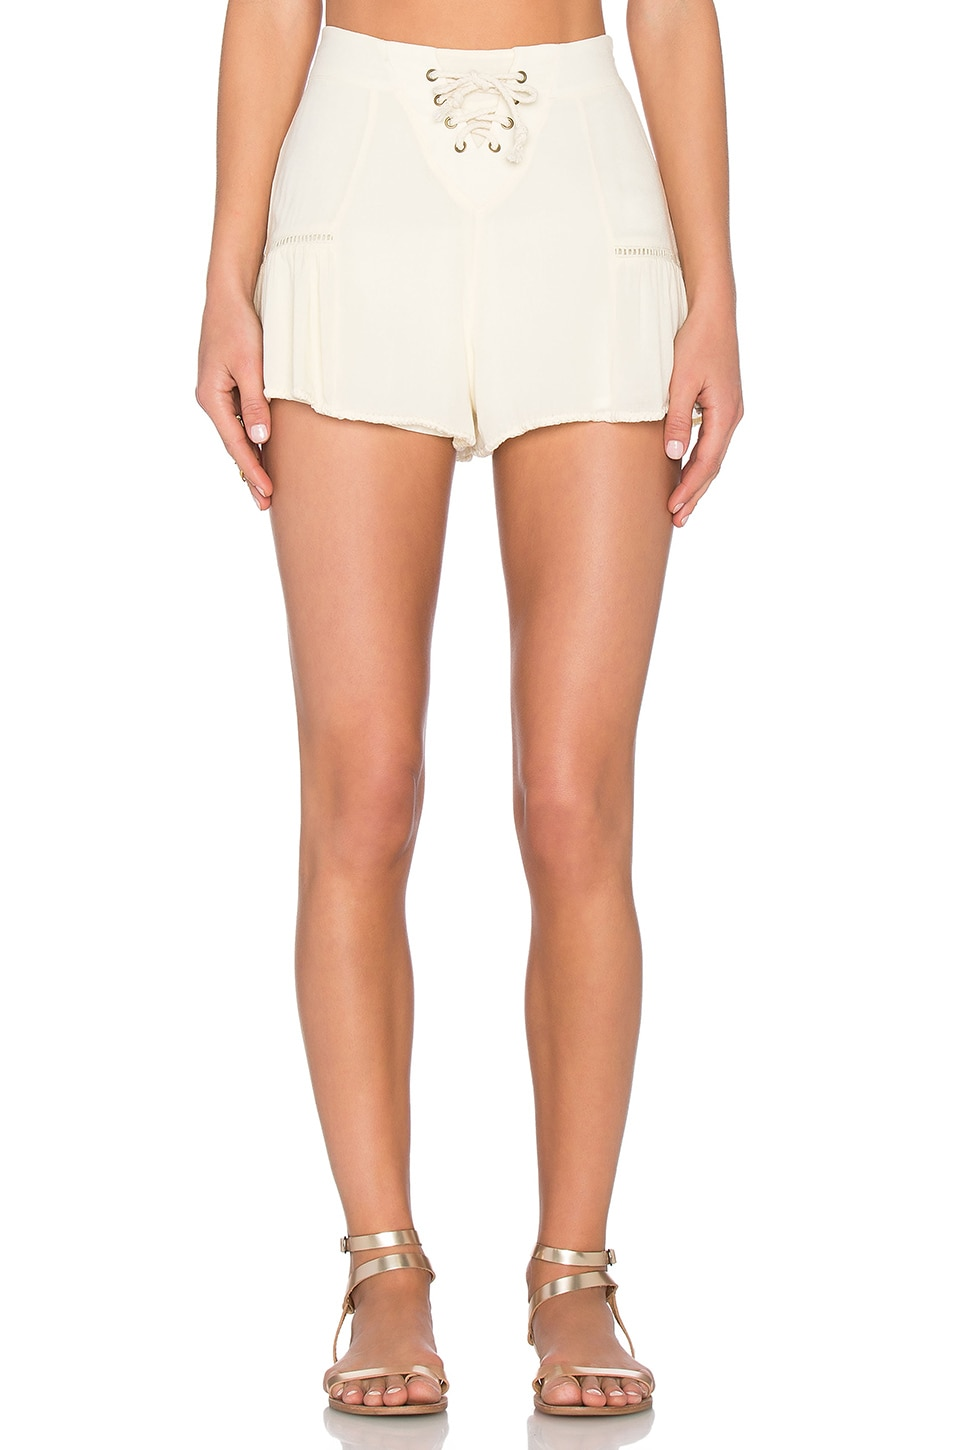 Windswept Lace Up Short by Somedays Lovin